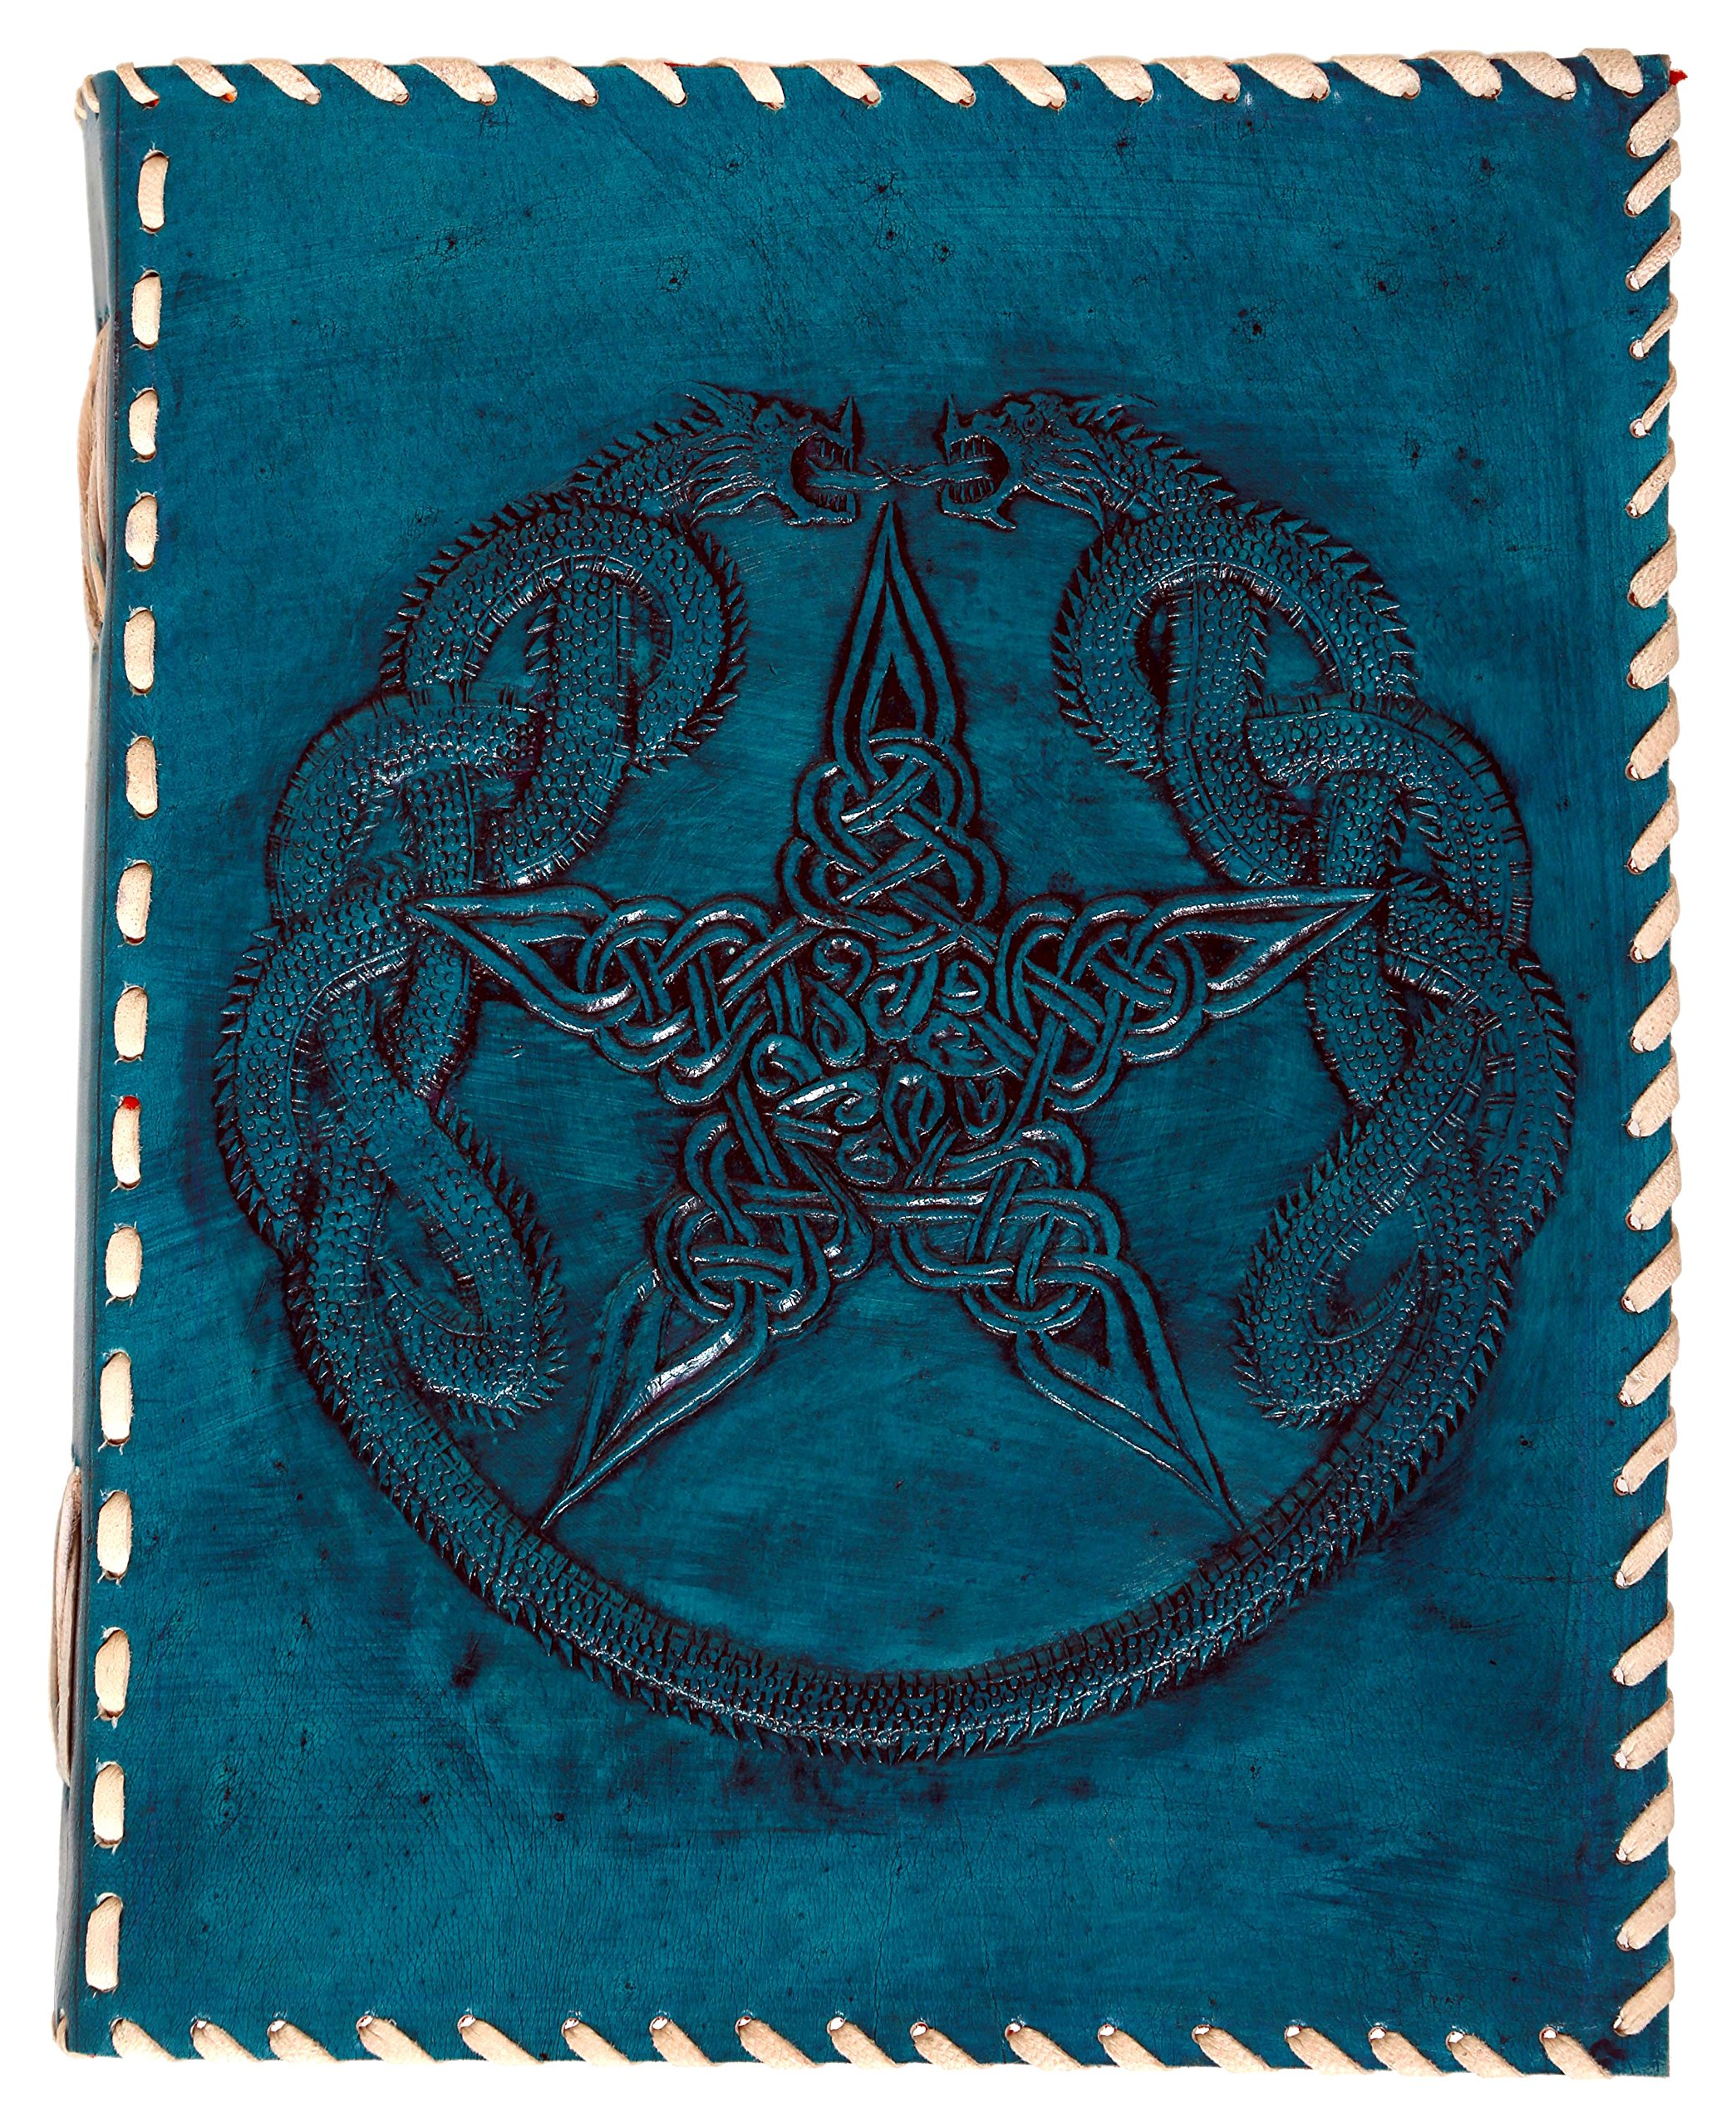 Imperial Vintage Leather Handmade Journal 9X7'' Embossed Dragon and Pentagon Star Notebook, Diary, Sketchbook, Travel and Thought Blank Book for Writing & Sketching - Turquoise